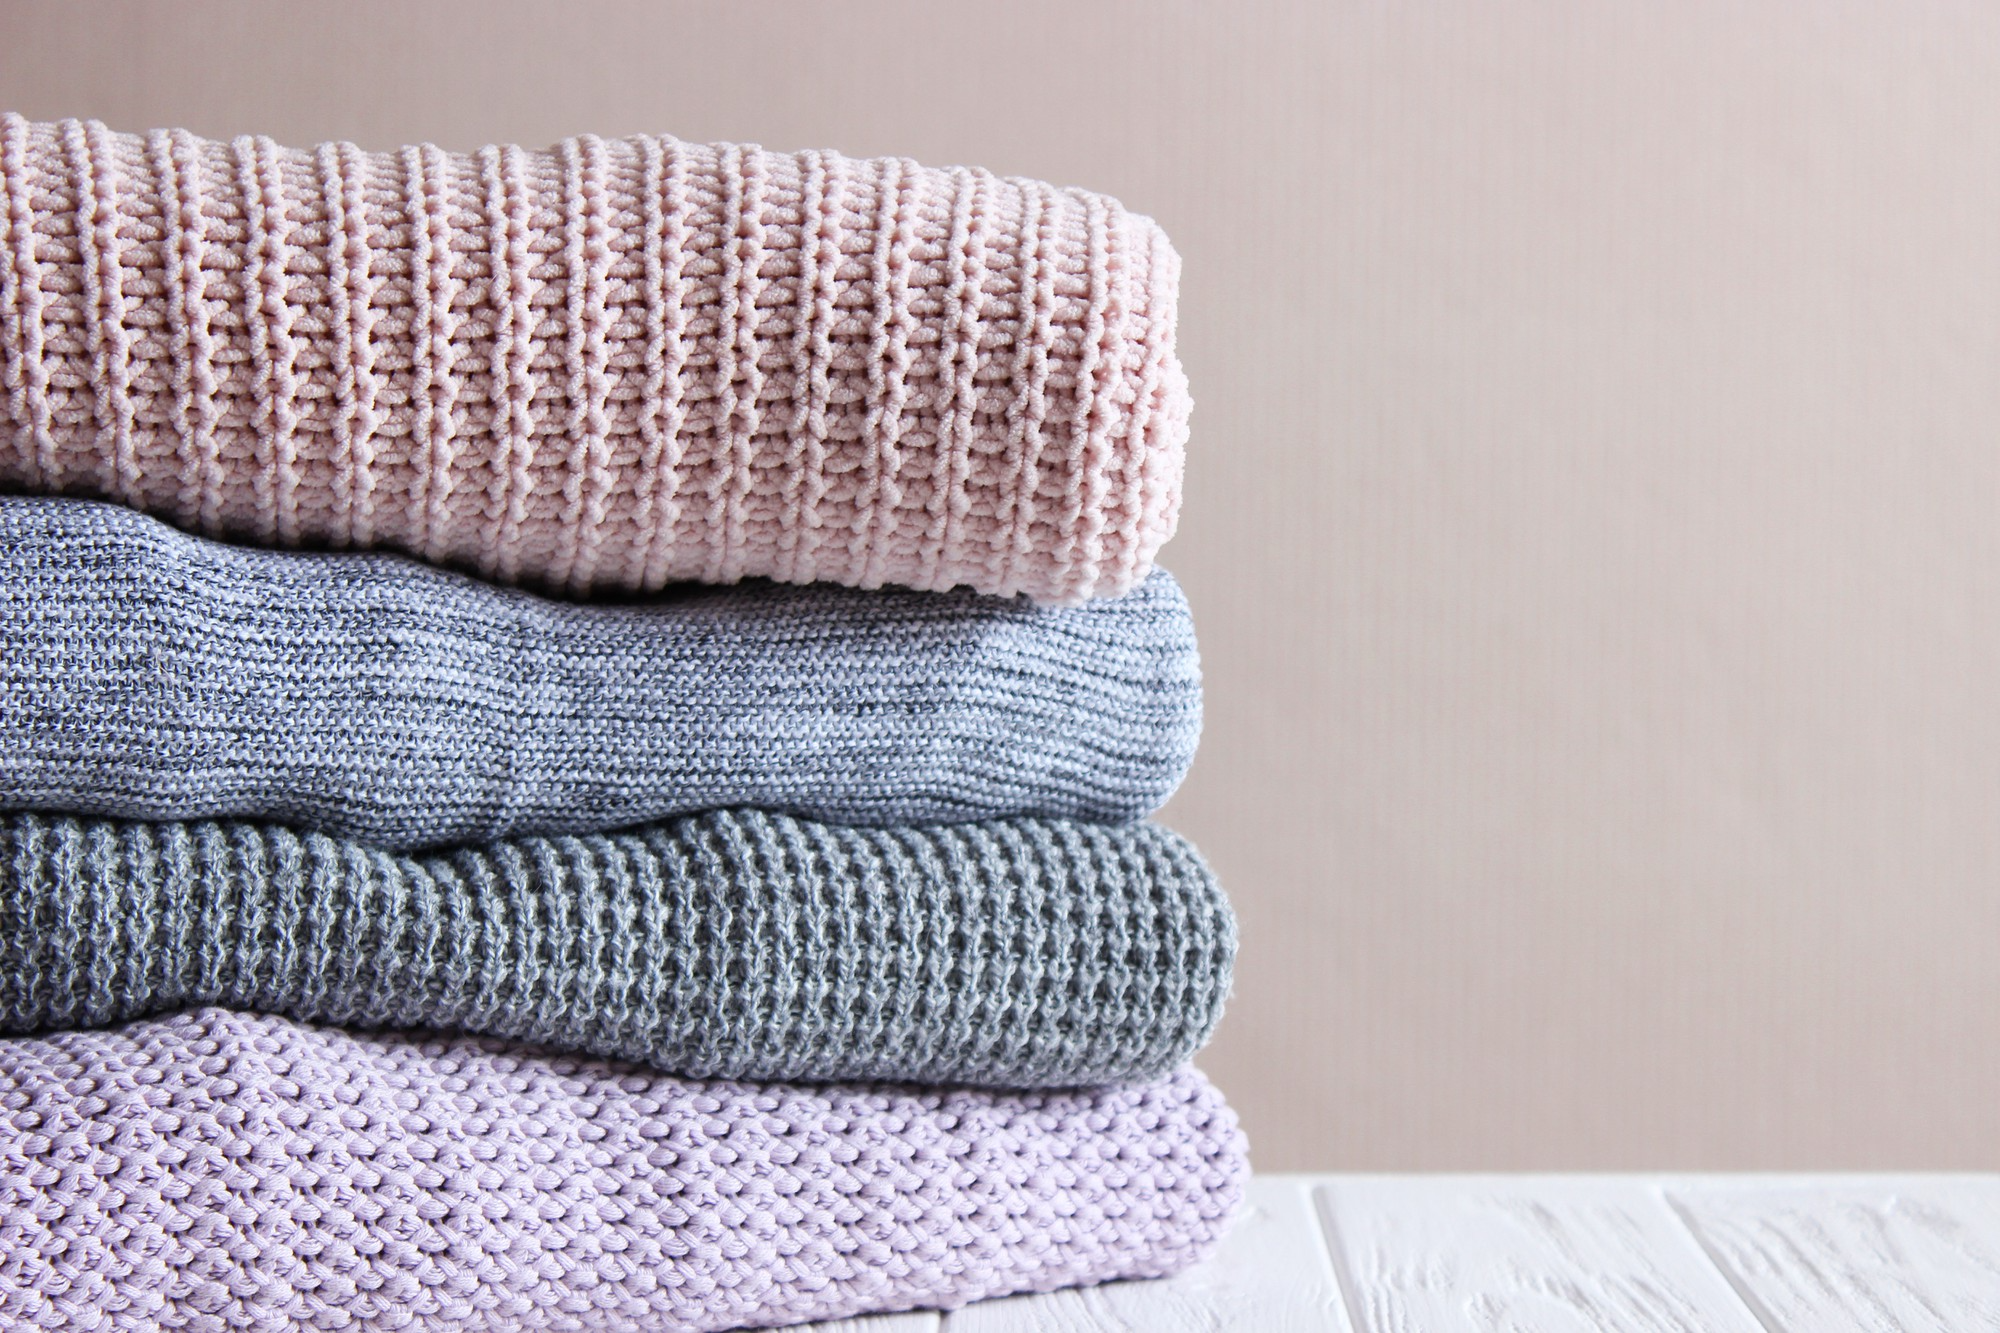 Folded and stacked knitted rugs